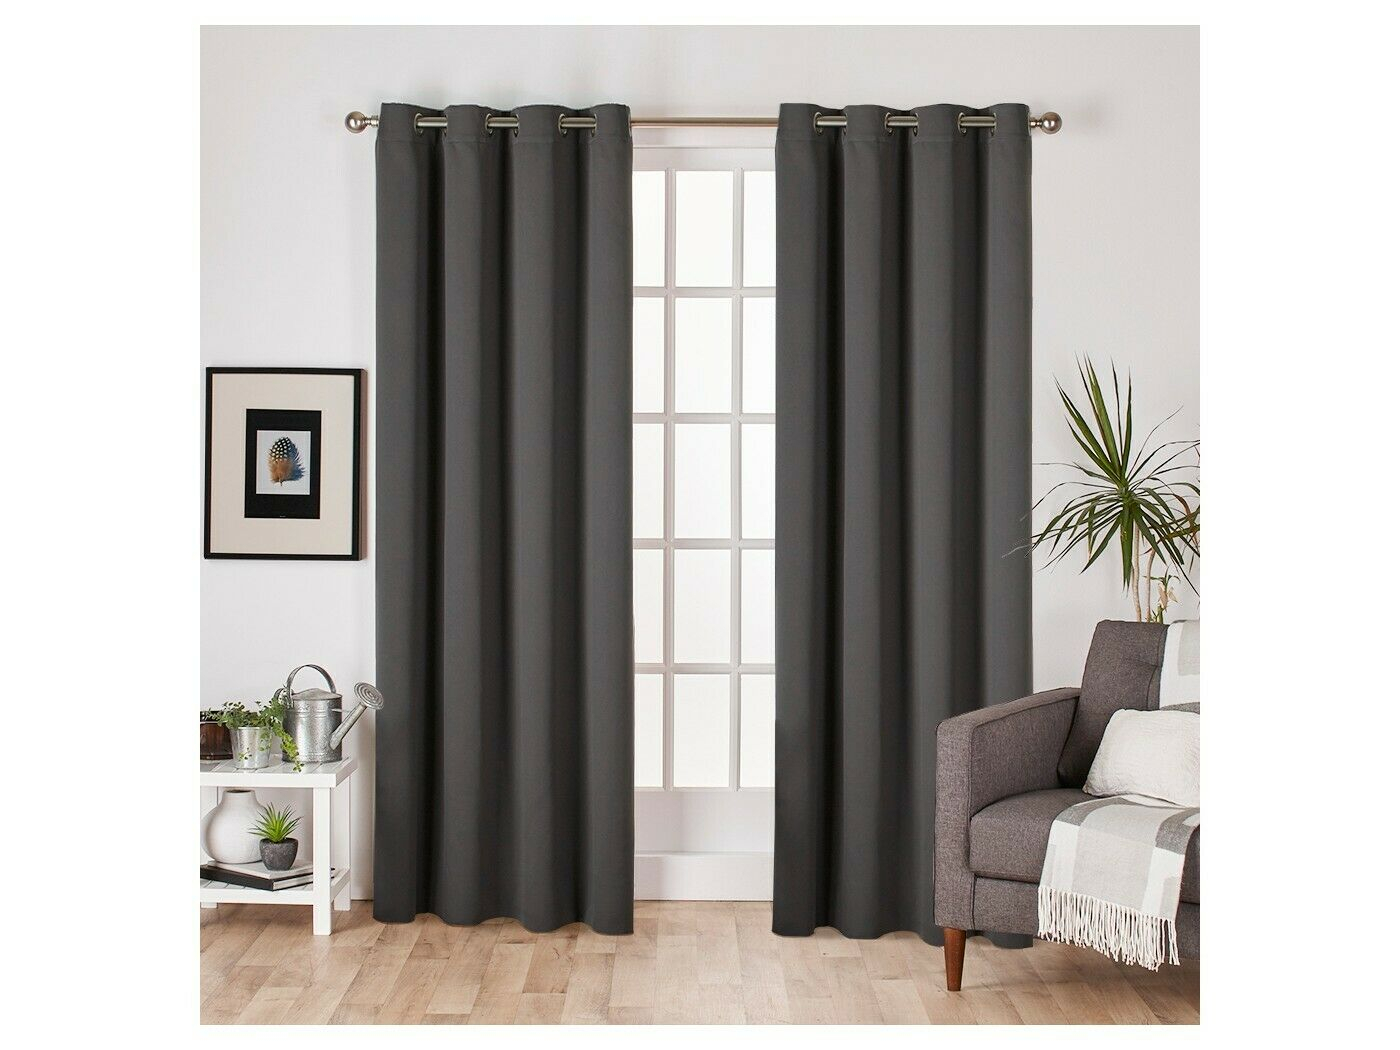 Set Of 2 Sateen Twill Weave Insulated Blackout Grommet Top With Regard To Sateen Twill Weave Insulated Blackout Window Curtain Panel Pairs (View 16 of 20)